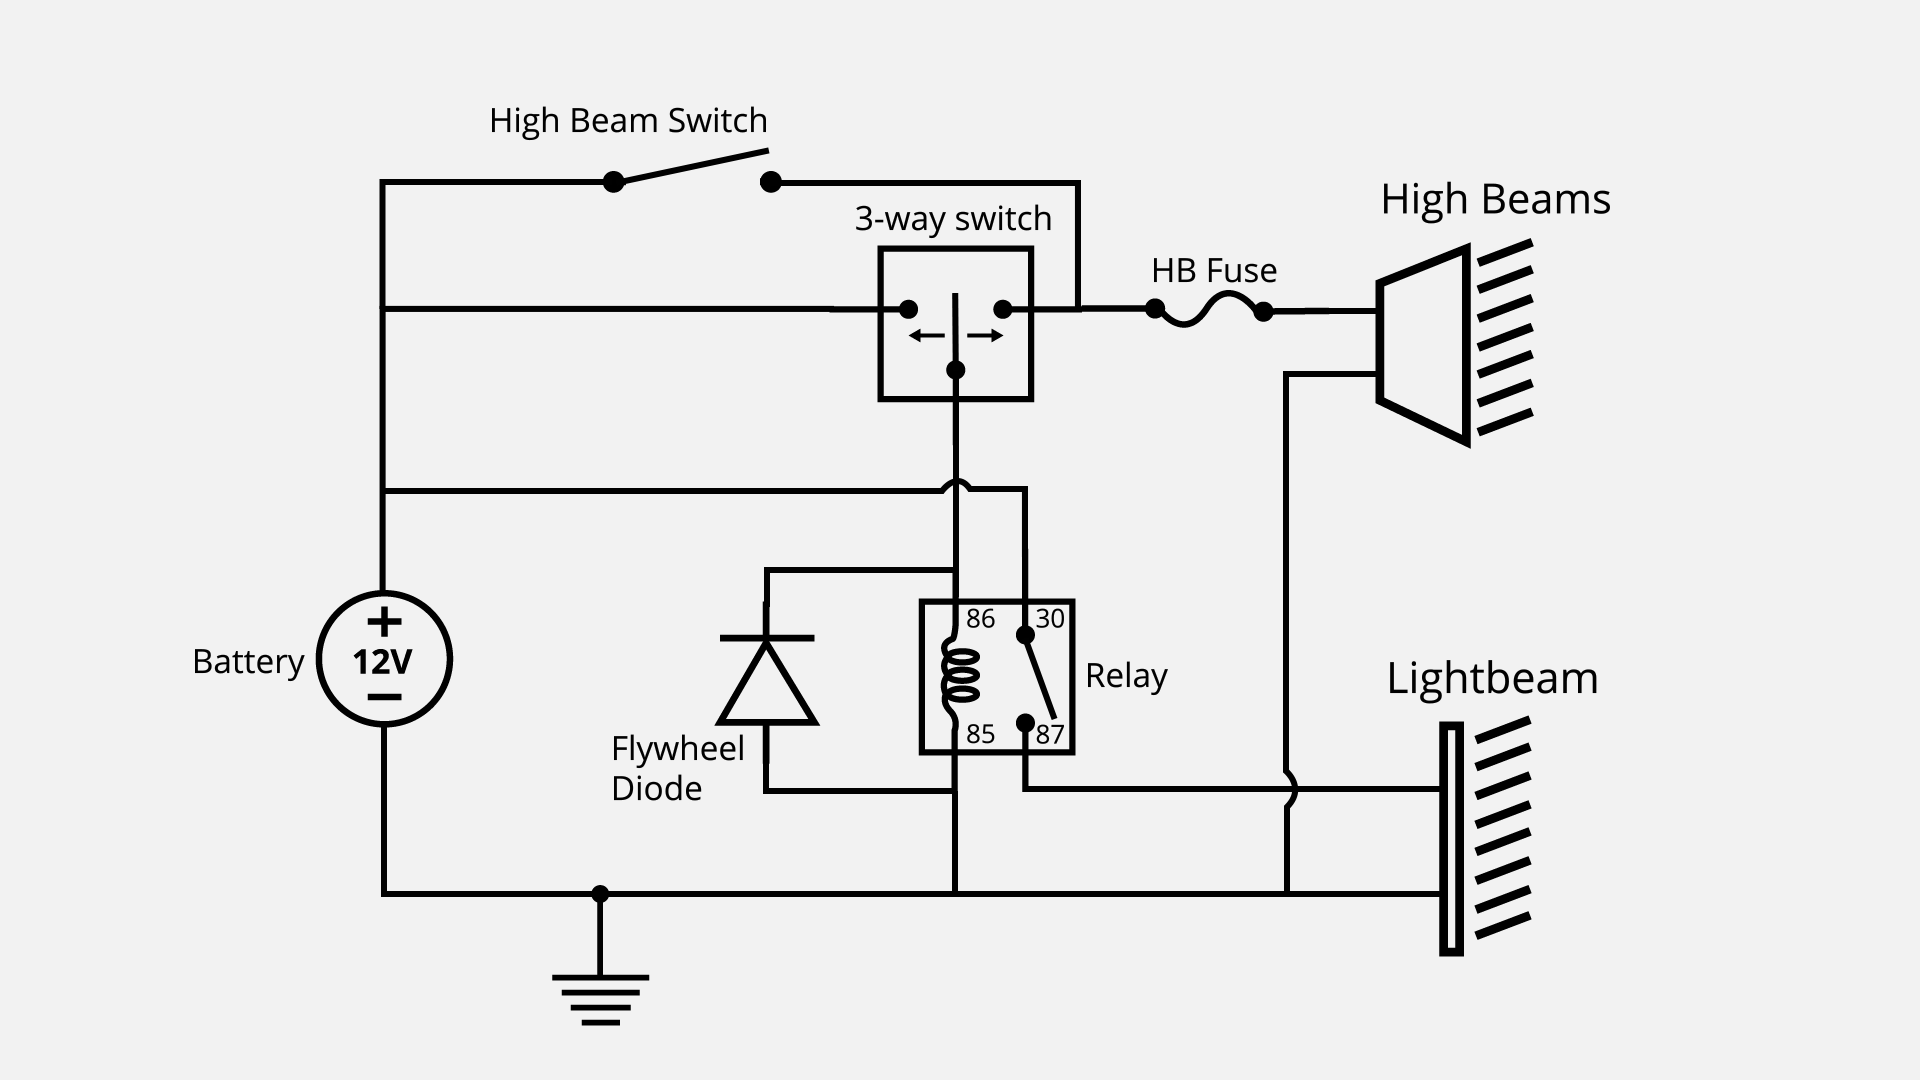 hight resolution of gm highbeam headlight wiring wiring diagram blog gm high beam headlight wiring